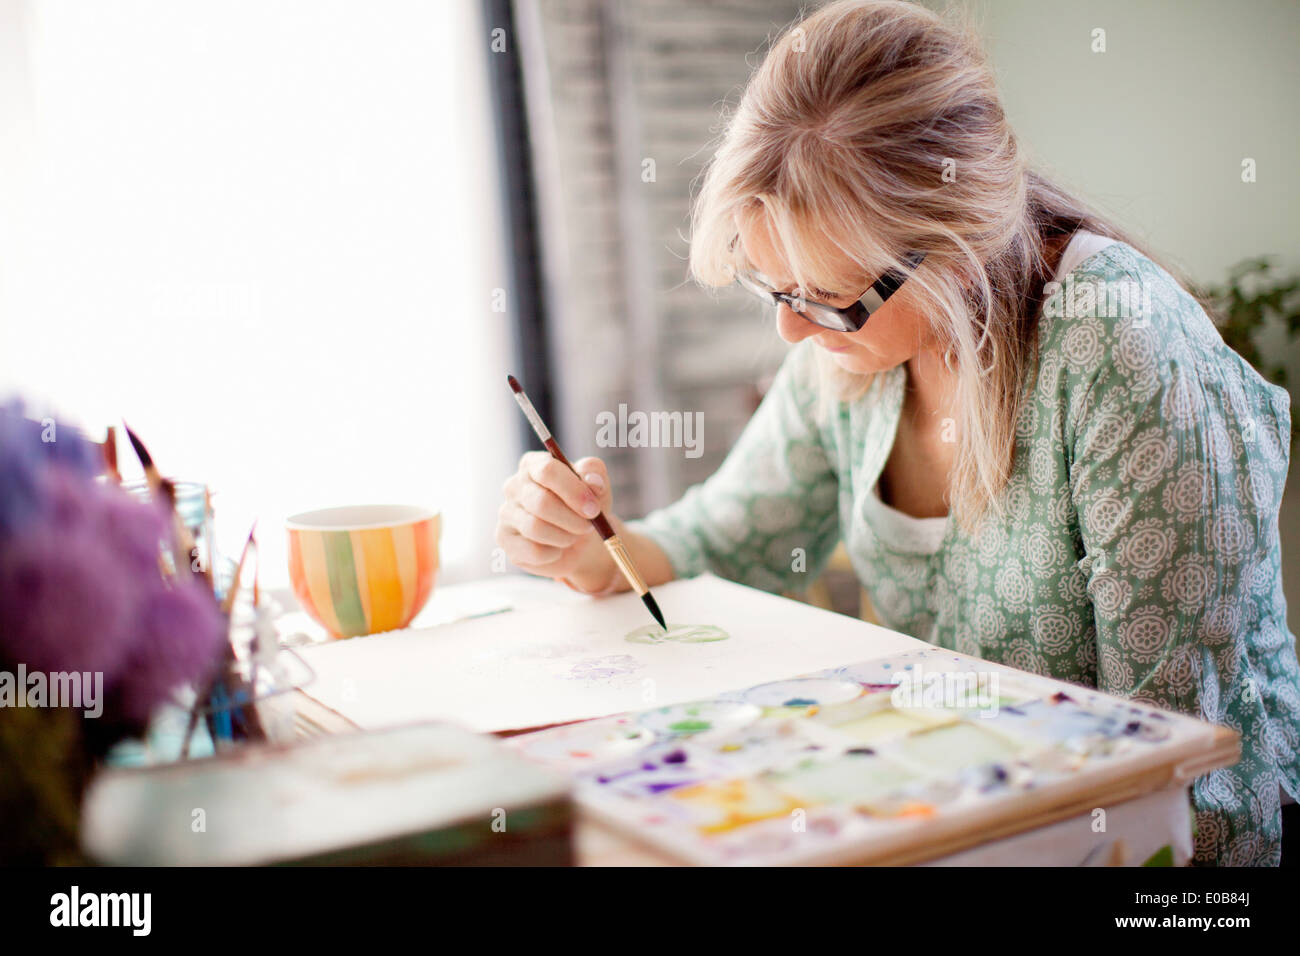 Mature female artist watercolour painting in studio - Stock Image